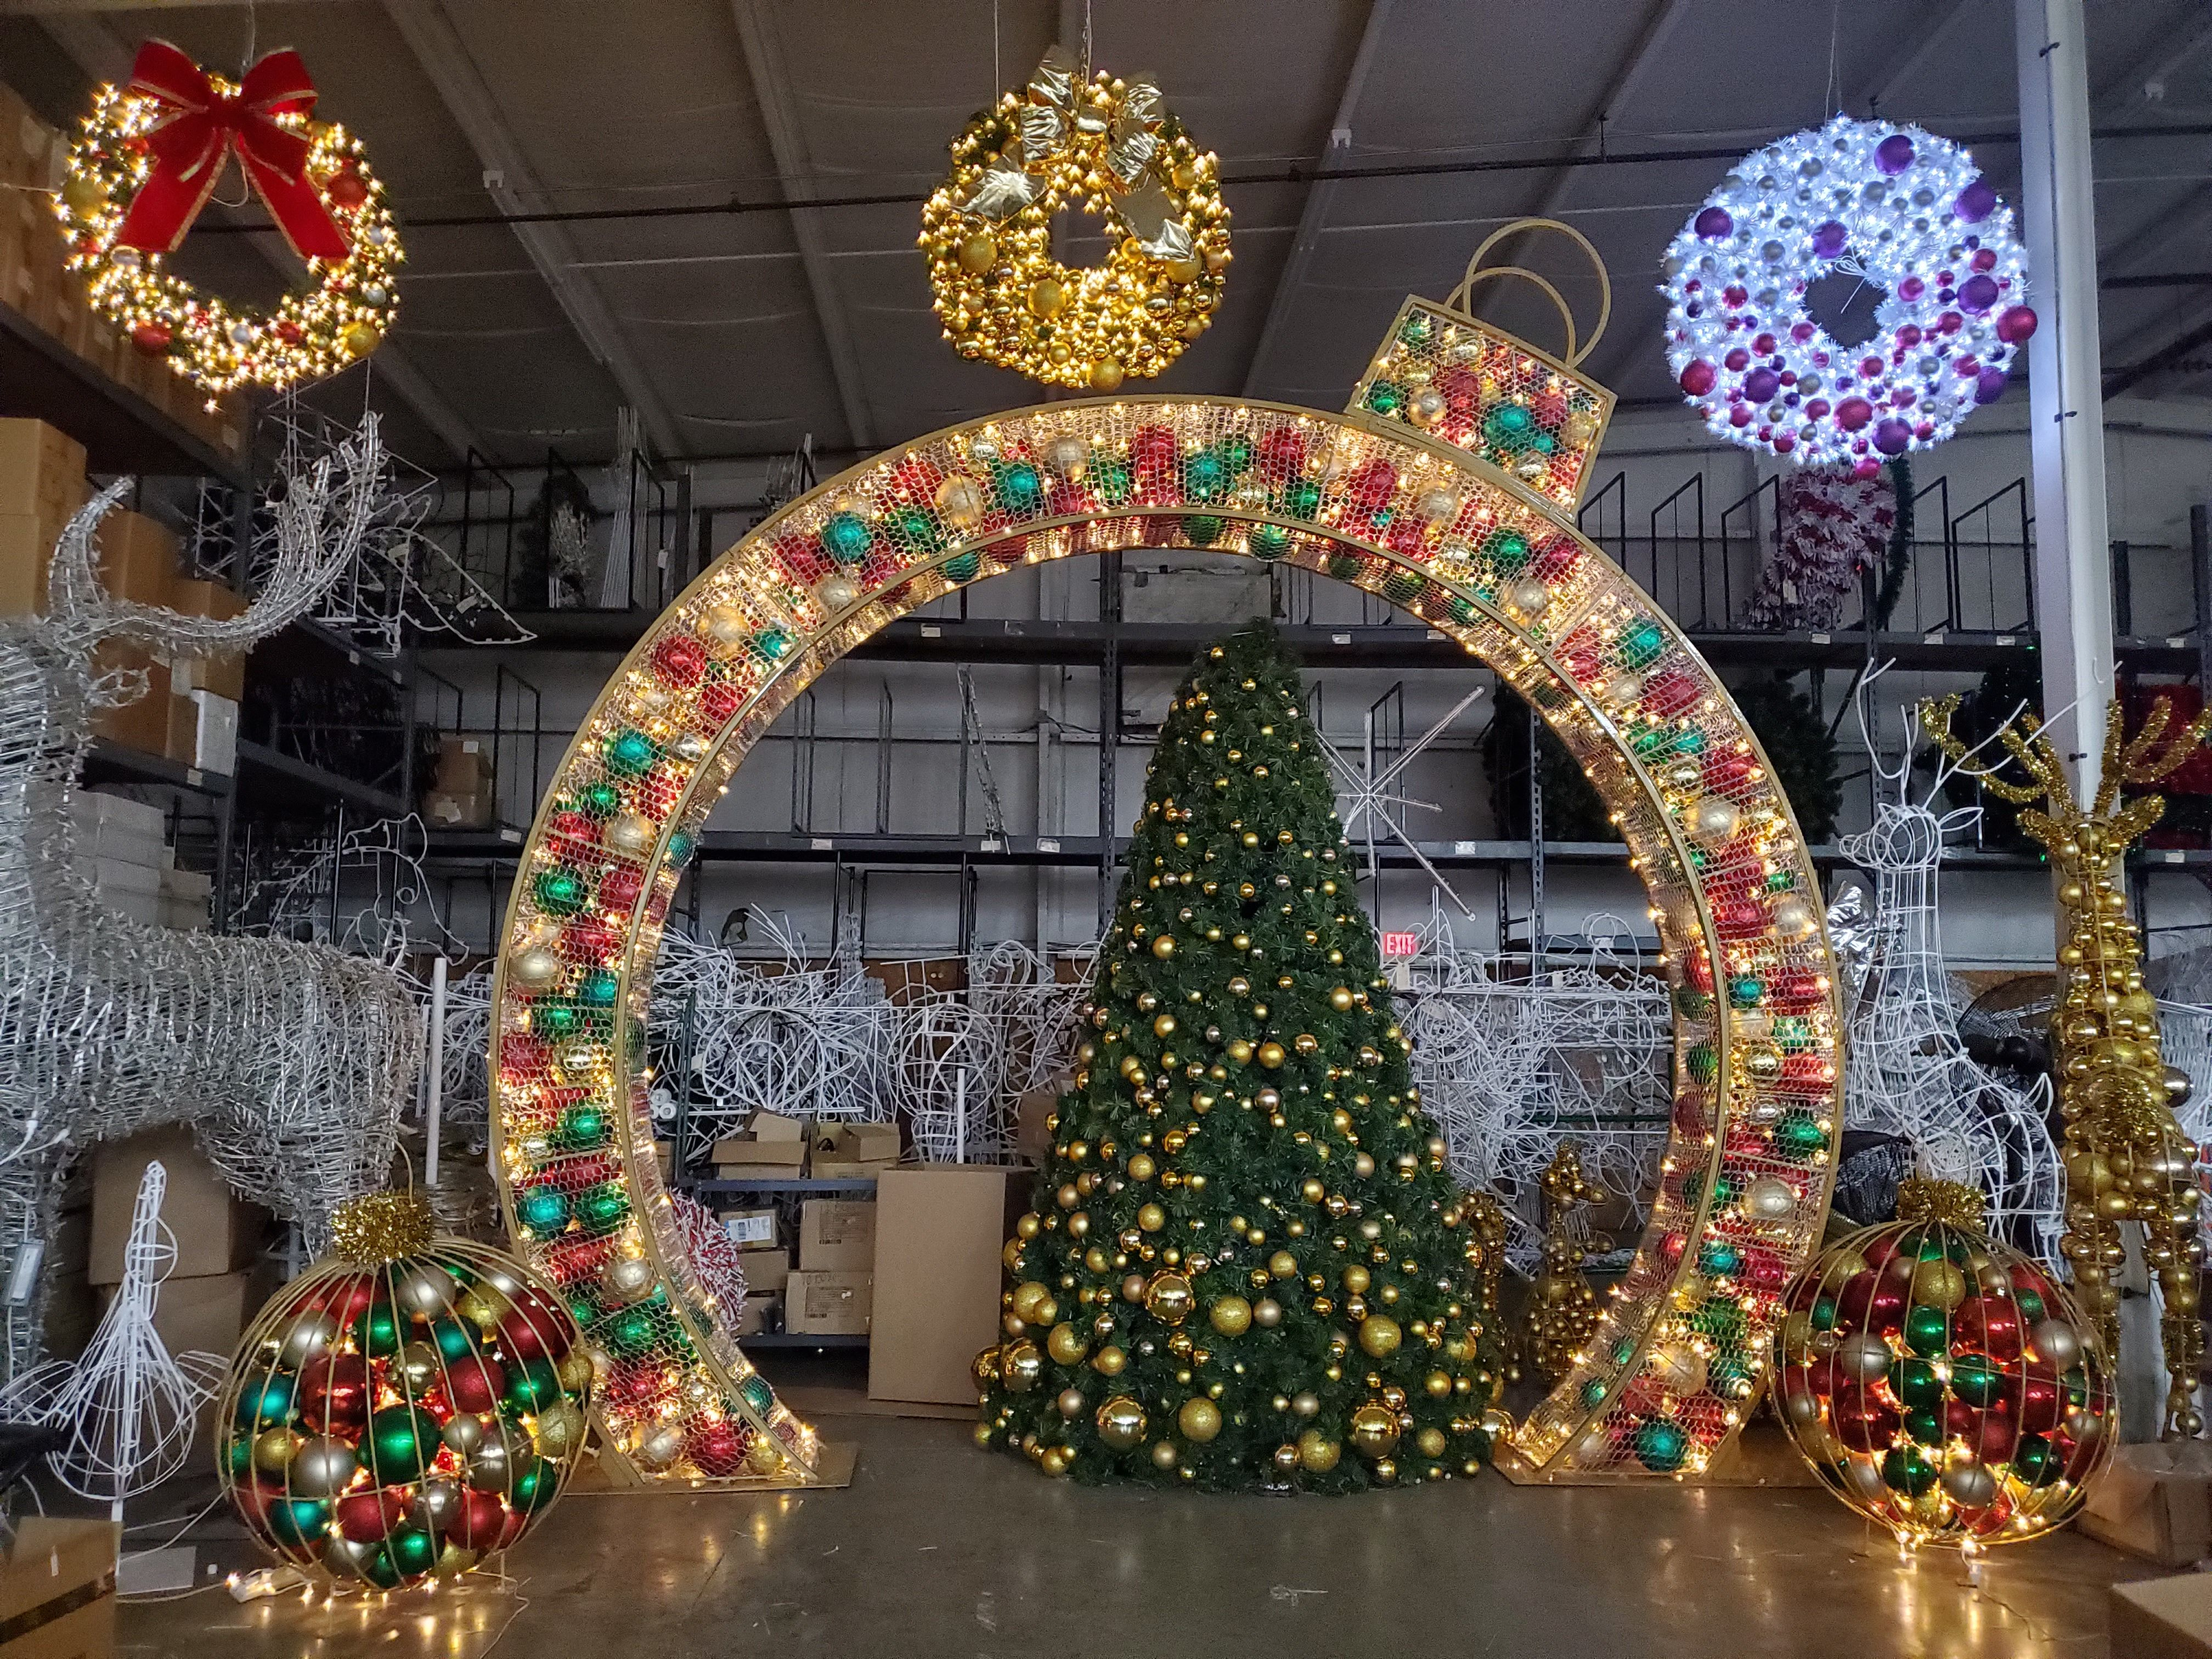 Outdoor Commercial Christmas Decorations Temple Display Ltd Commercial Holiday Decor Commercial Christmas Decorations Outdoor Christmas Light Displays